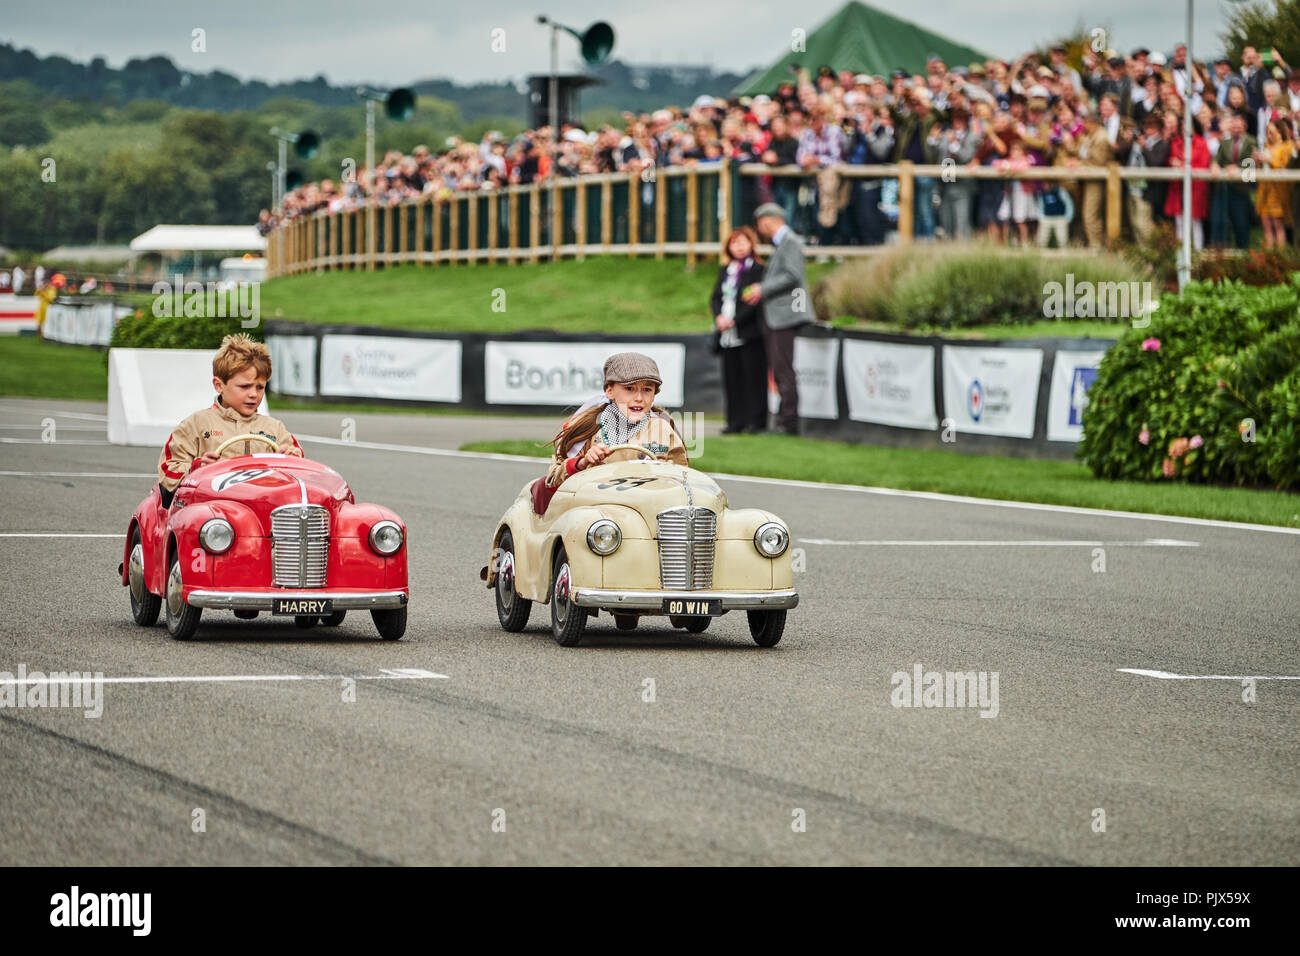 Chichester, West Sussex, UK, 9th September 2018. Pedal car race, during the Goodwood Revival at Goodwood Motor Circuit. Photo by Gergo Toth / Alamy Live News - Stock Image